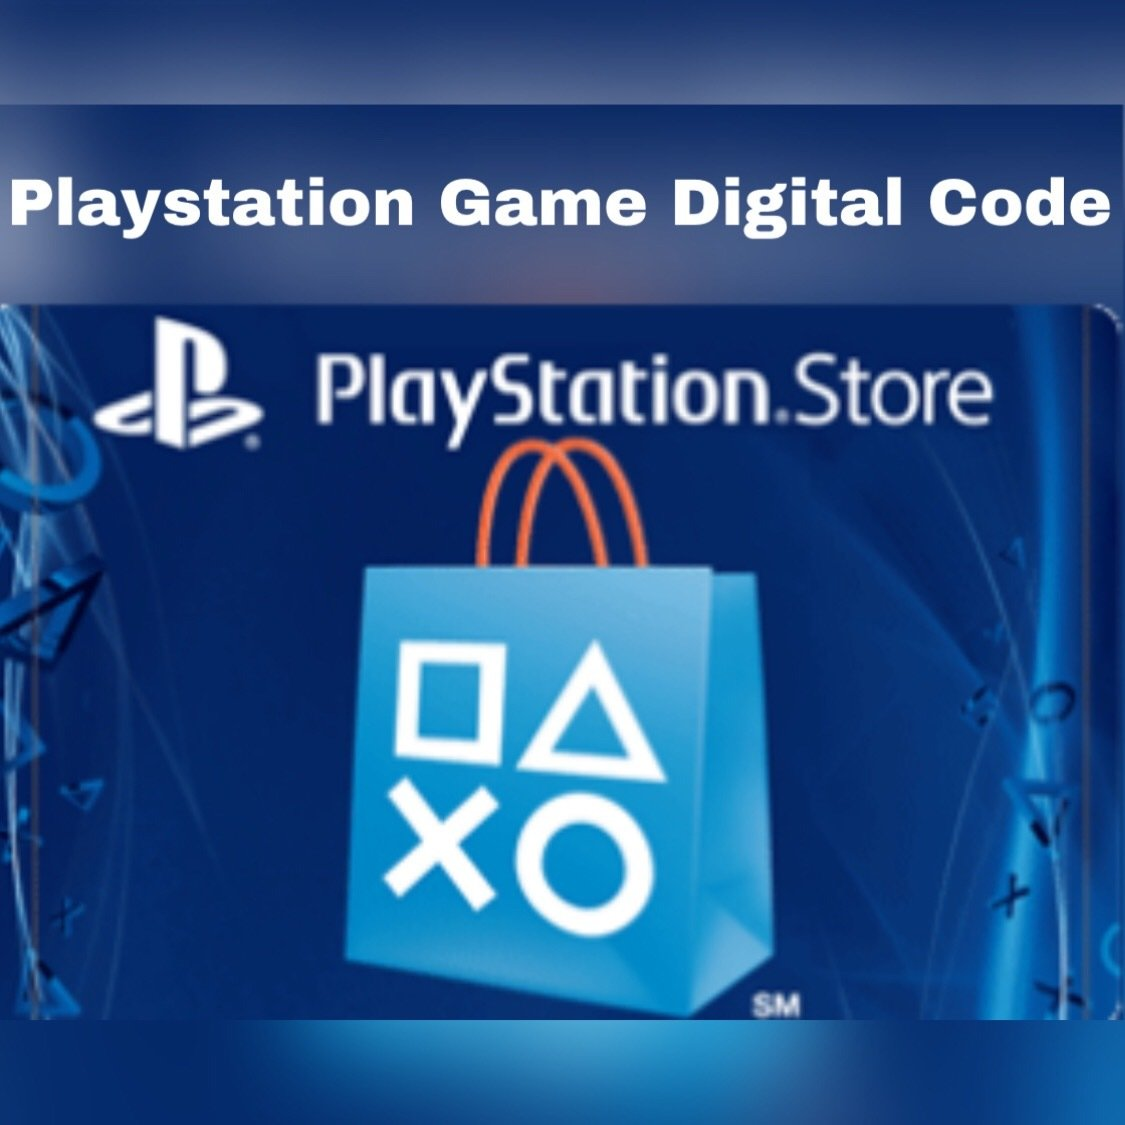 Playstation Game Digital Code